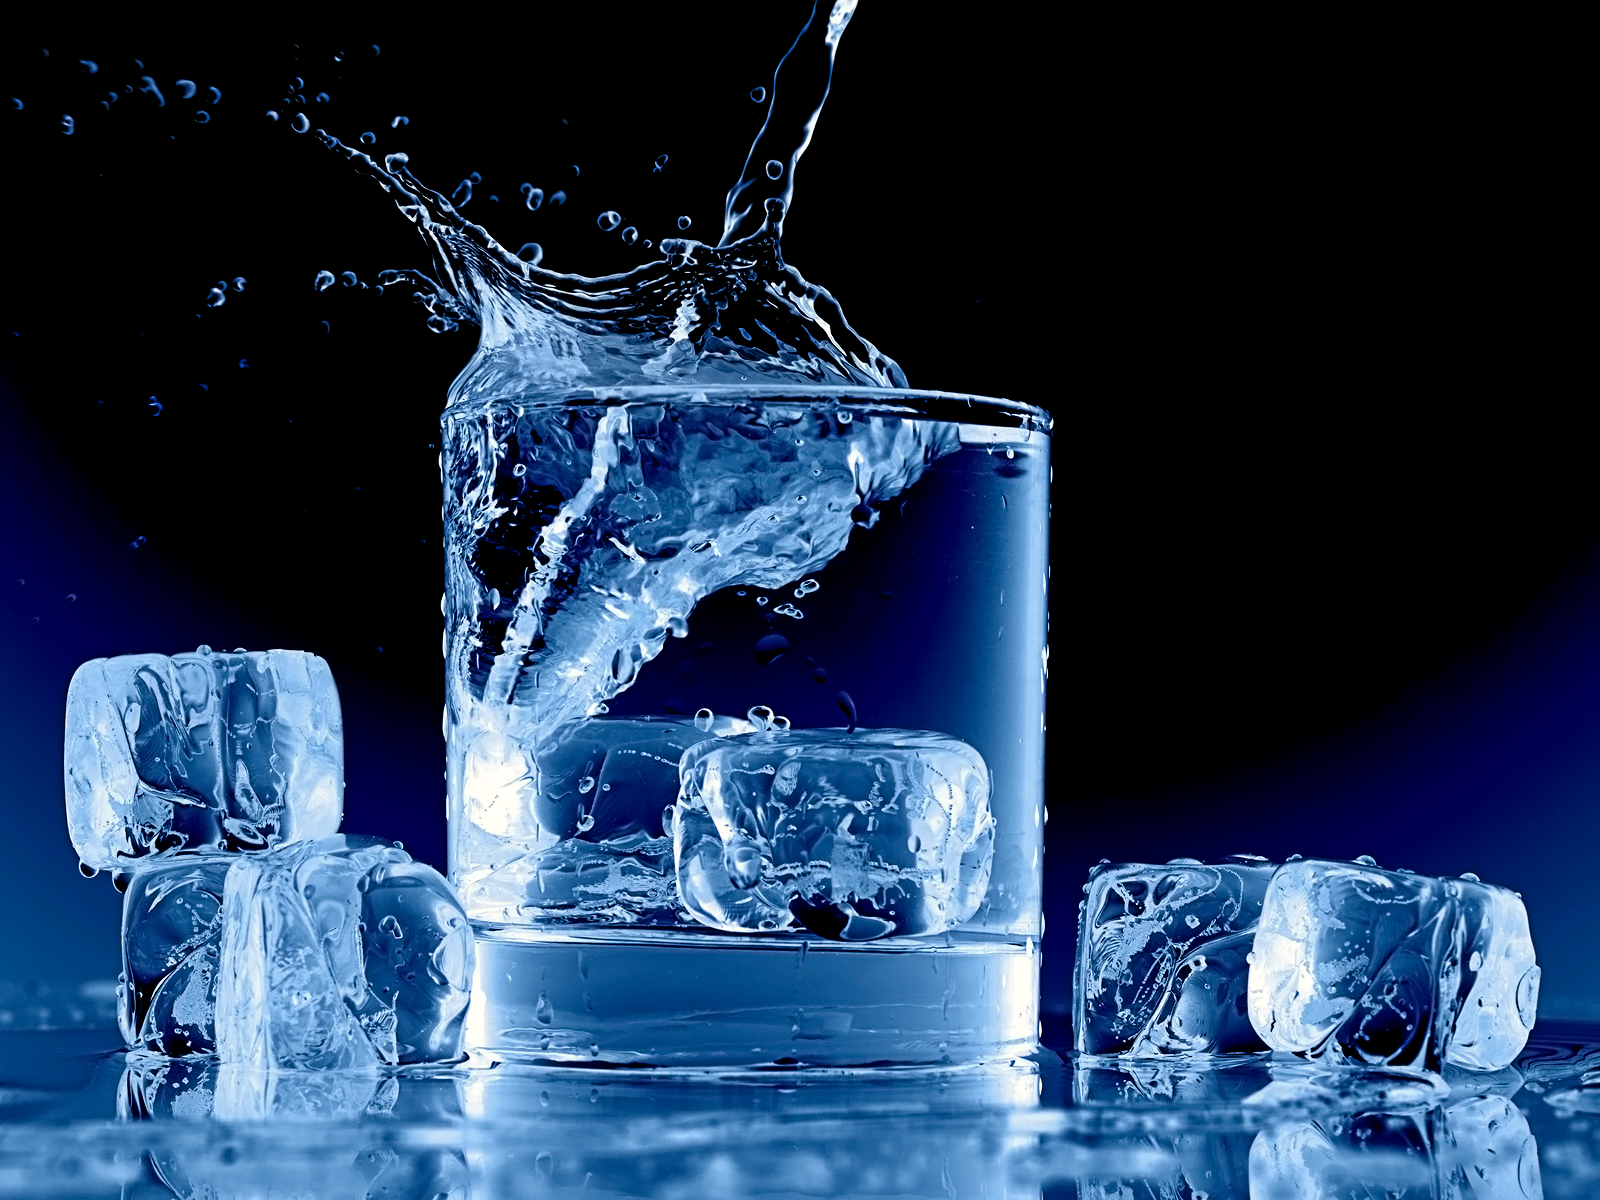 Chewing ice is bad for your teeth.